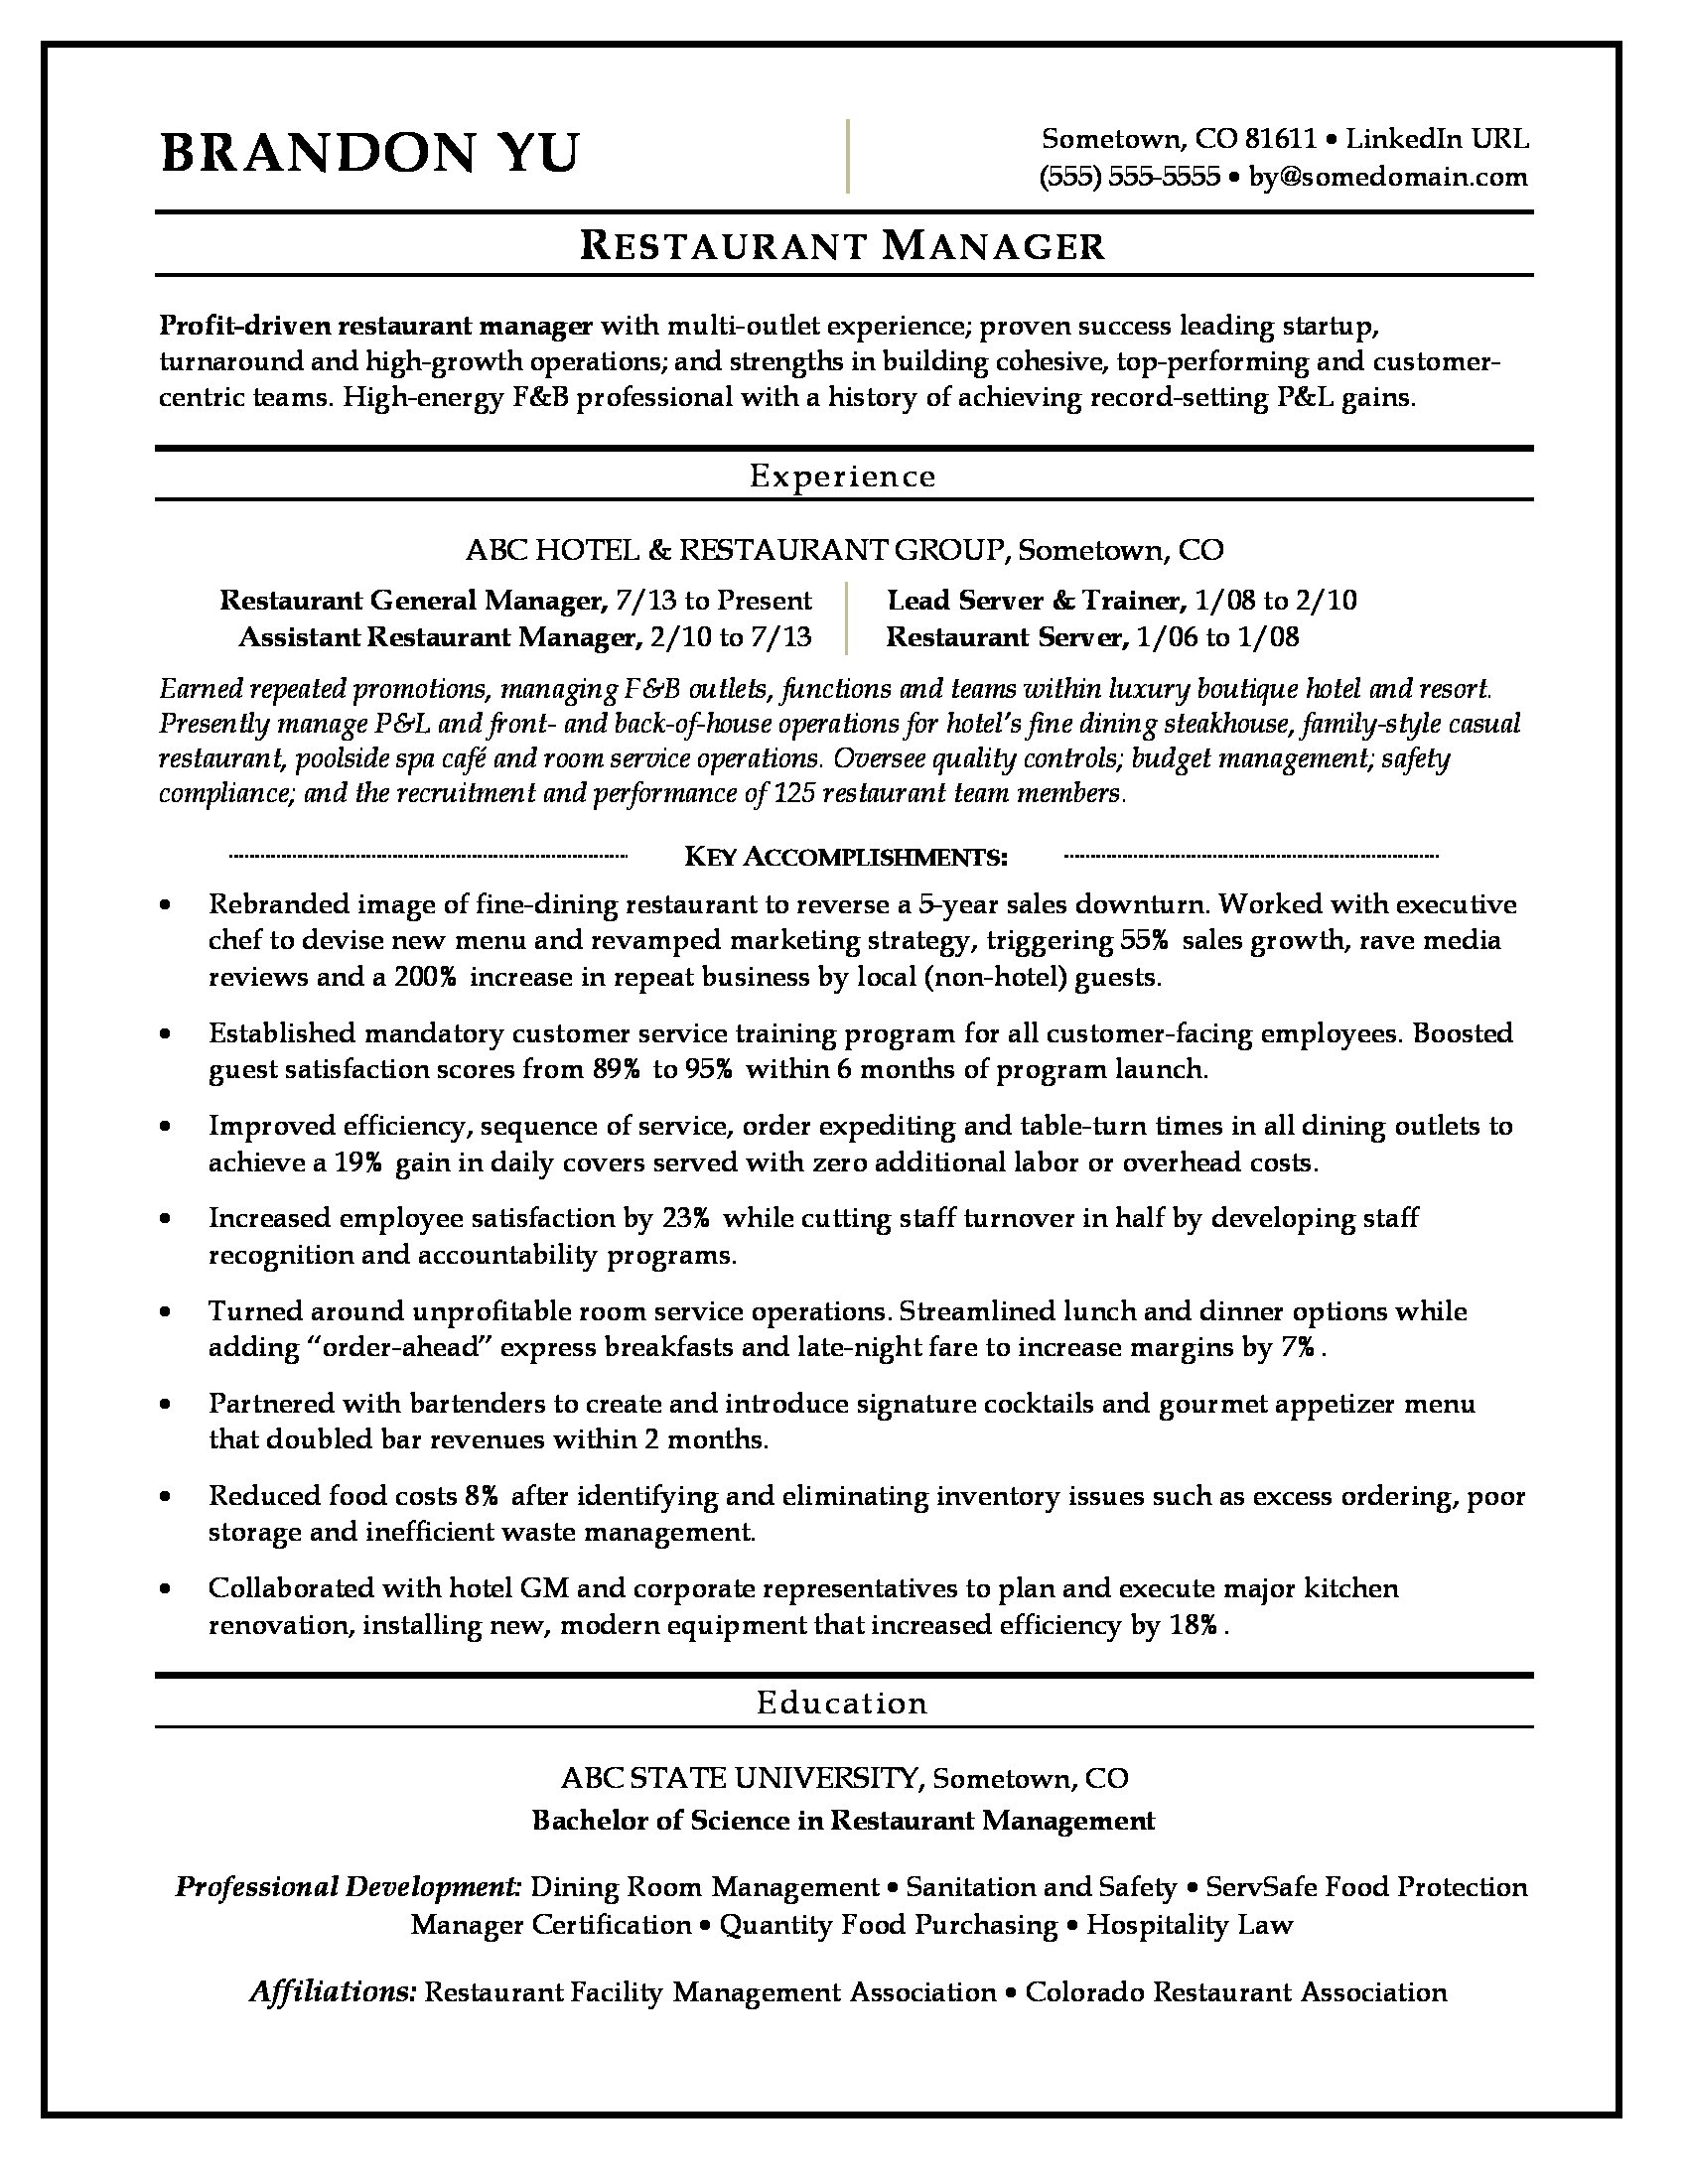 How to write a restaurant general manager resume